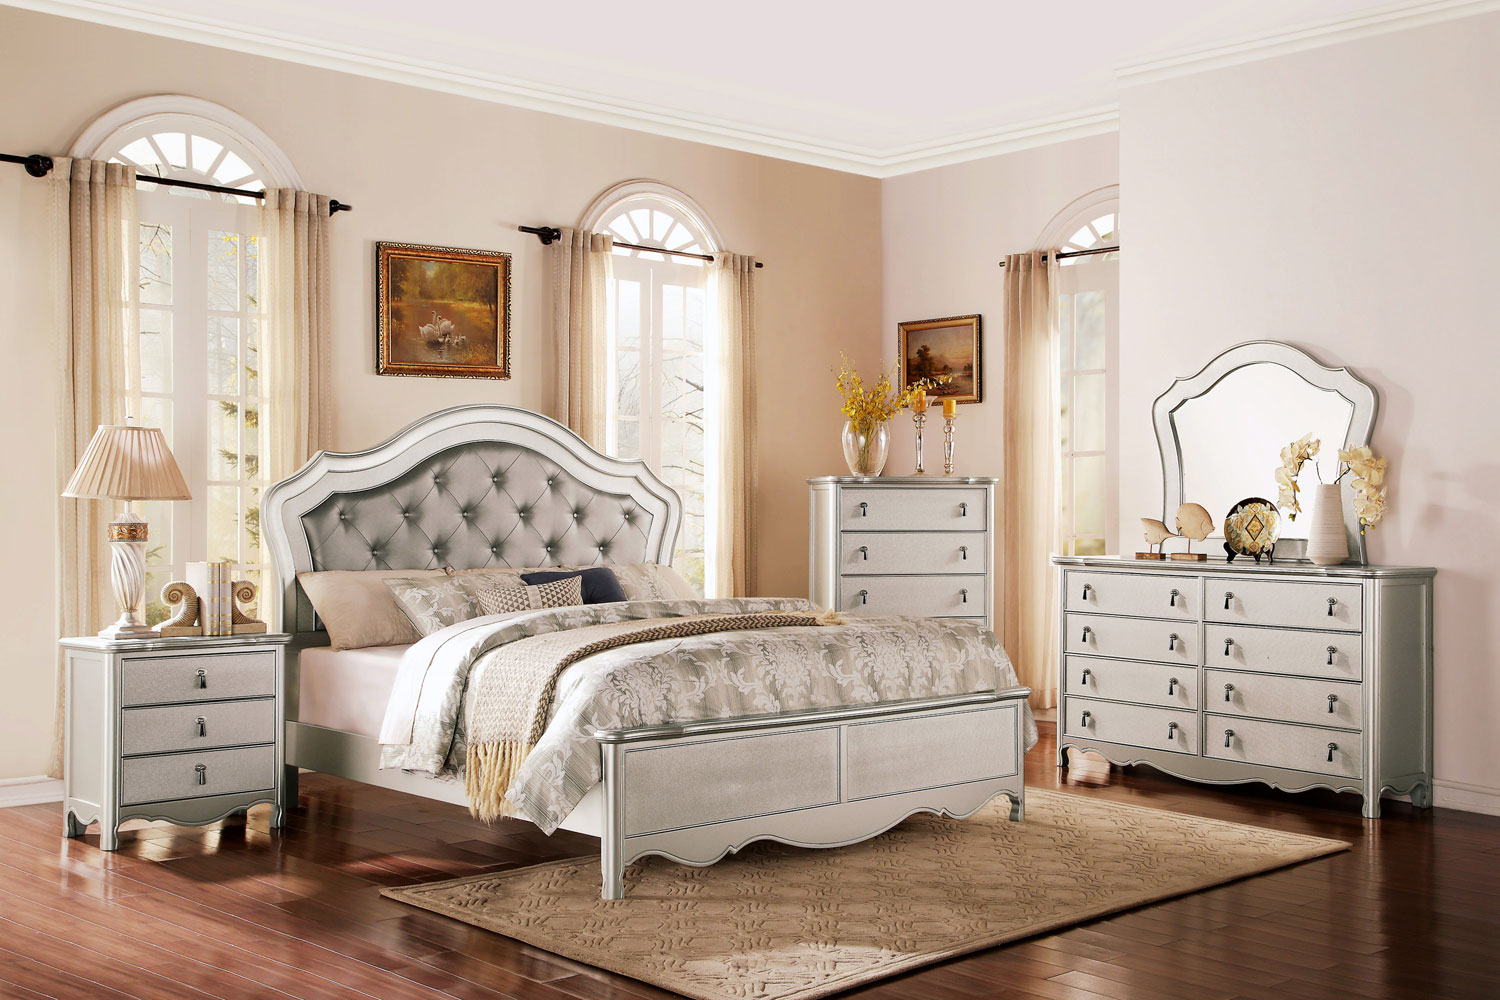 Homelegance Toulouse Upholstered Bedroom Set Champagne B1901 1 At